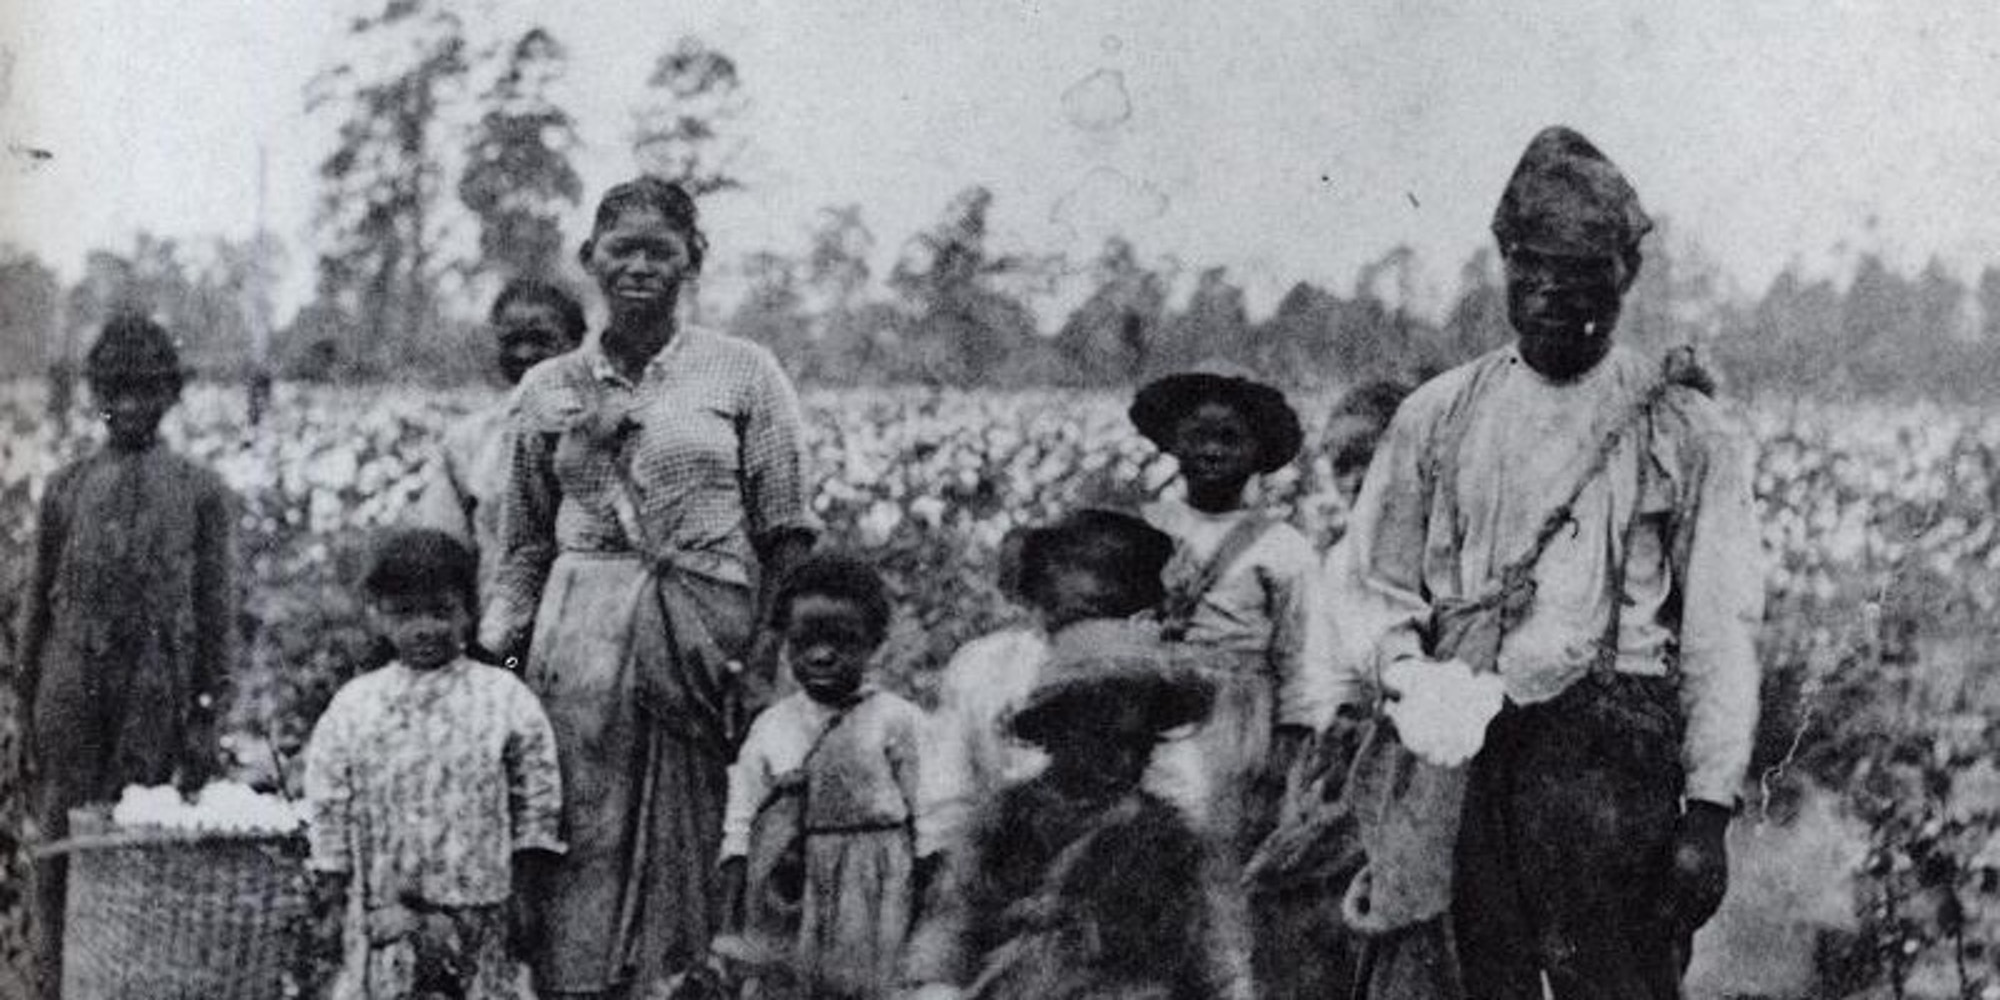 An enslaved family picking cotton outside Savannah, Ga., in the 1850s. Photograph by Pierre Havens.